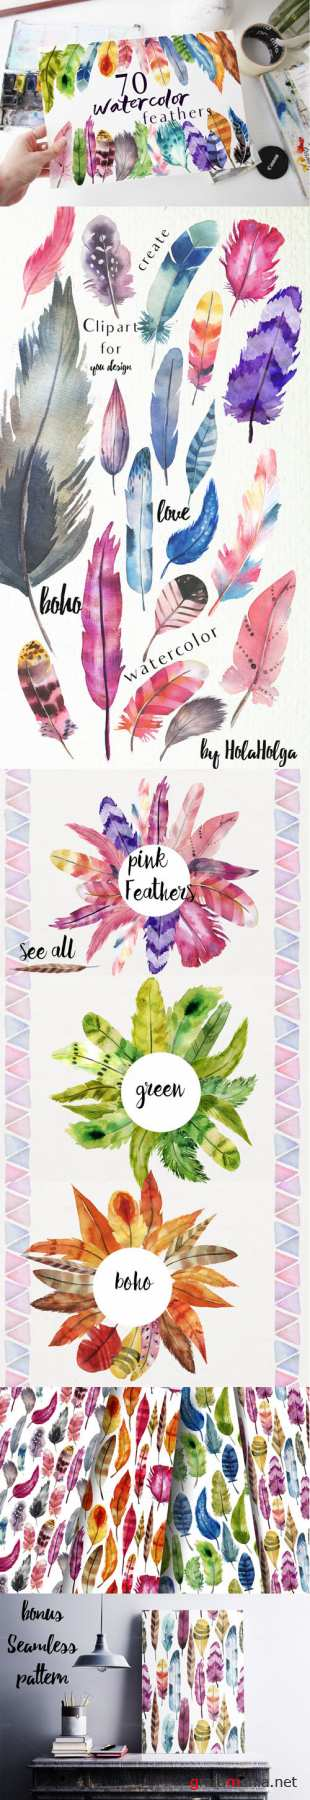 CreativeMarket - 70 watercolor feather files 728540